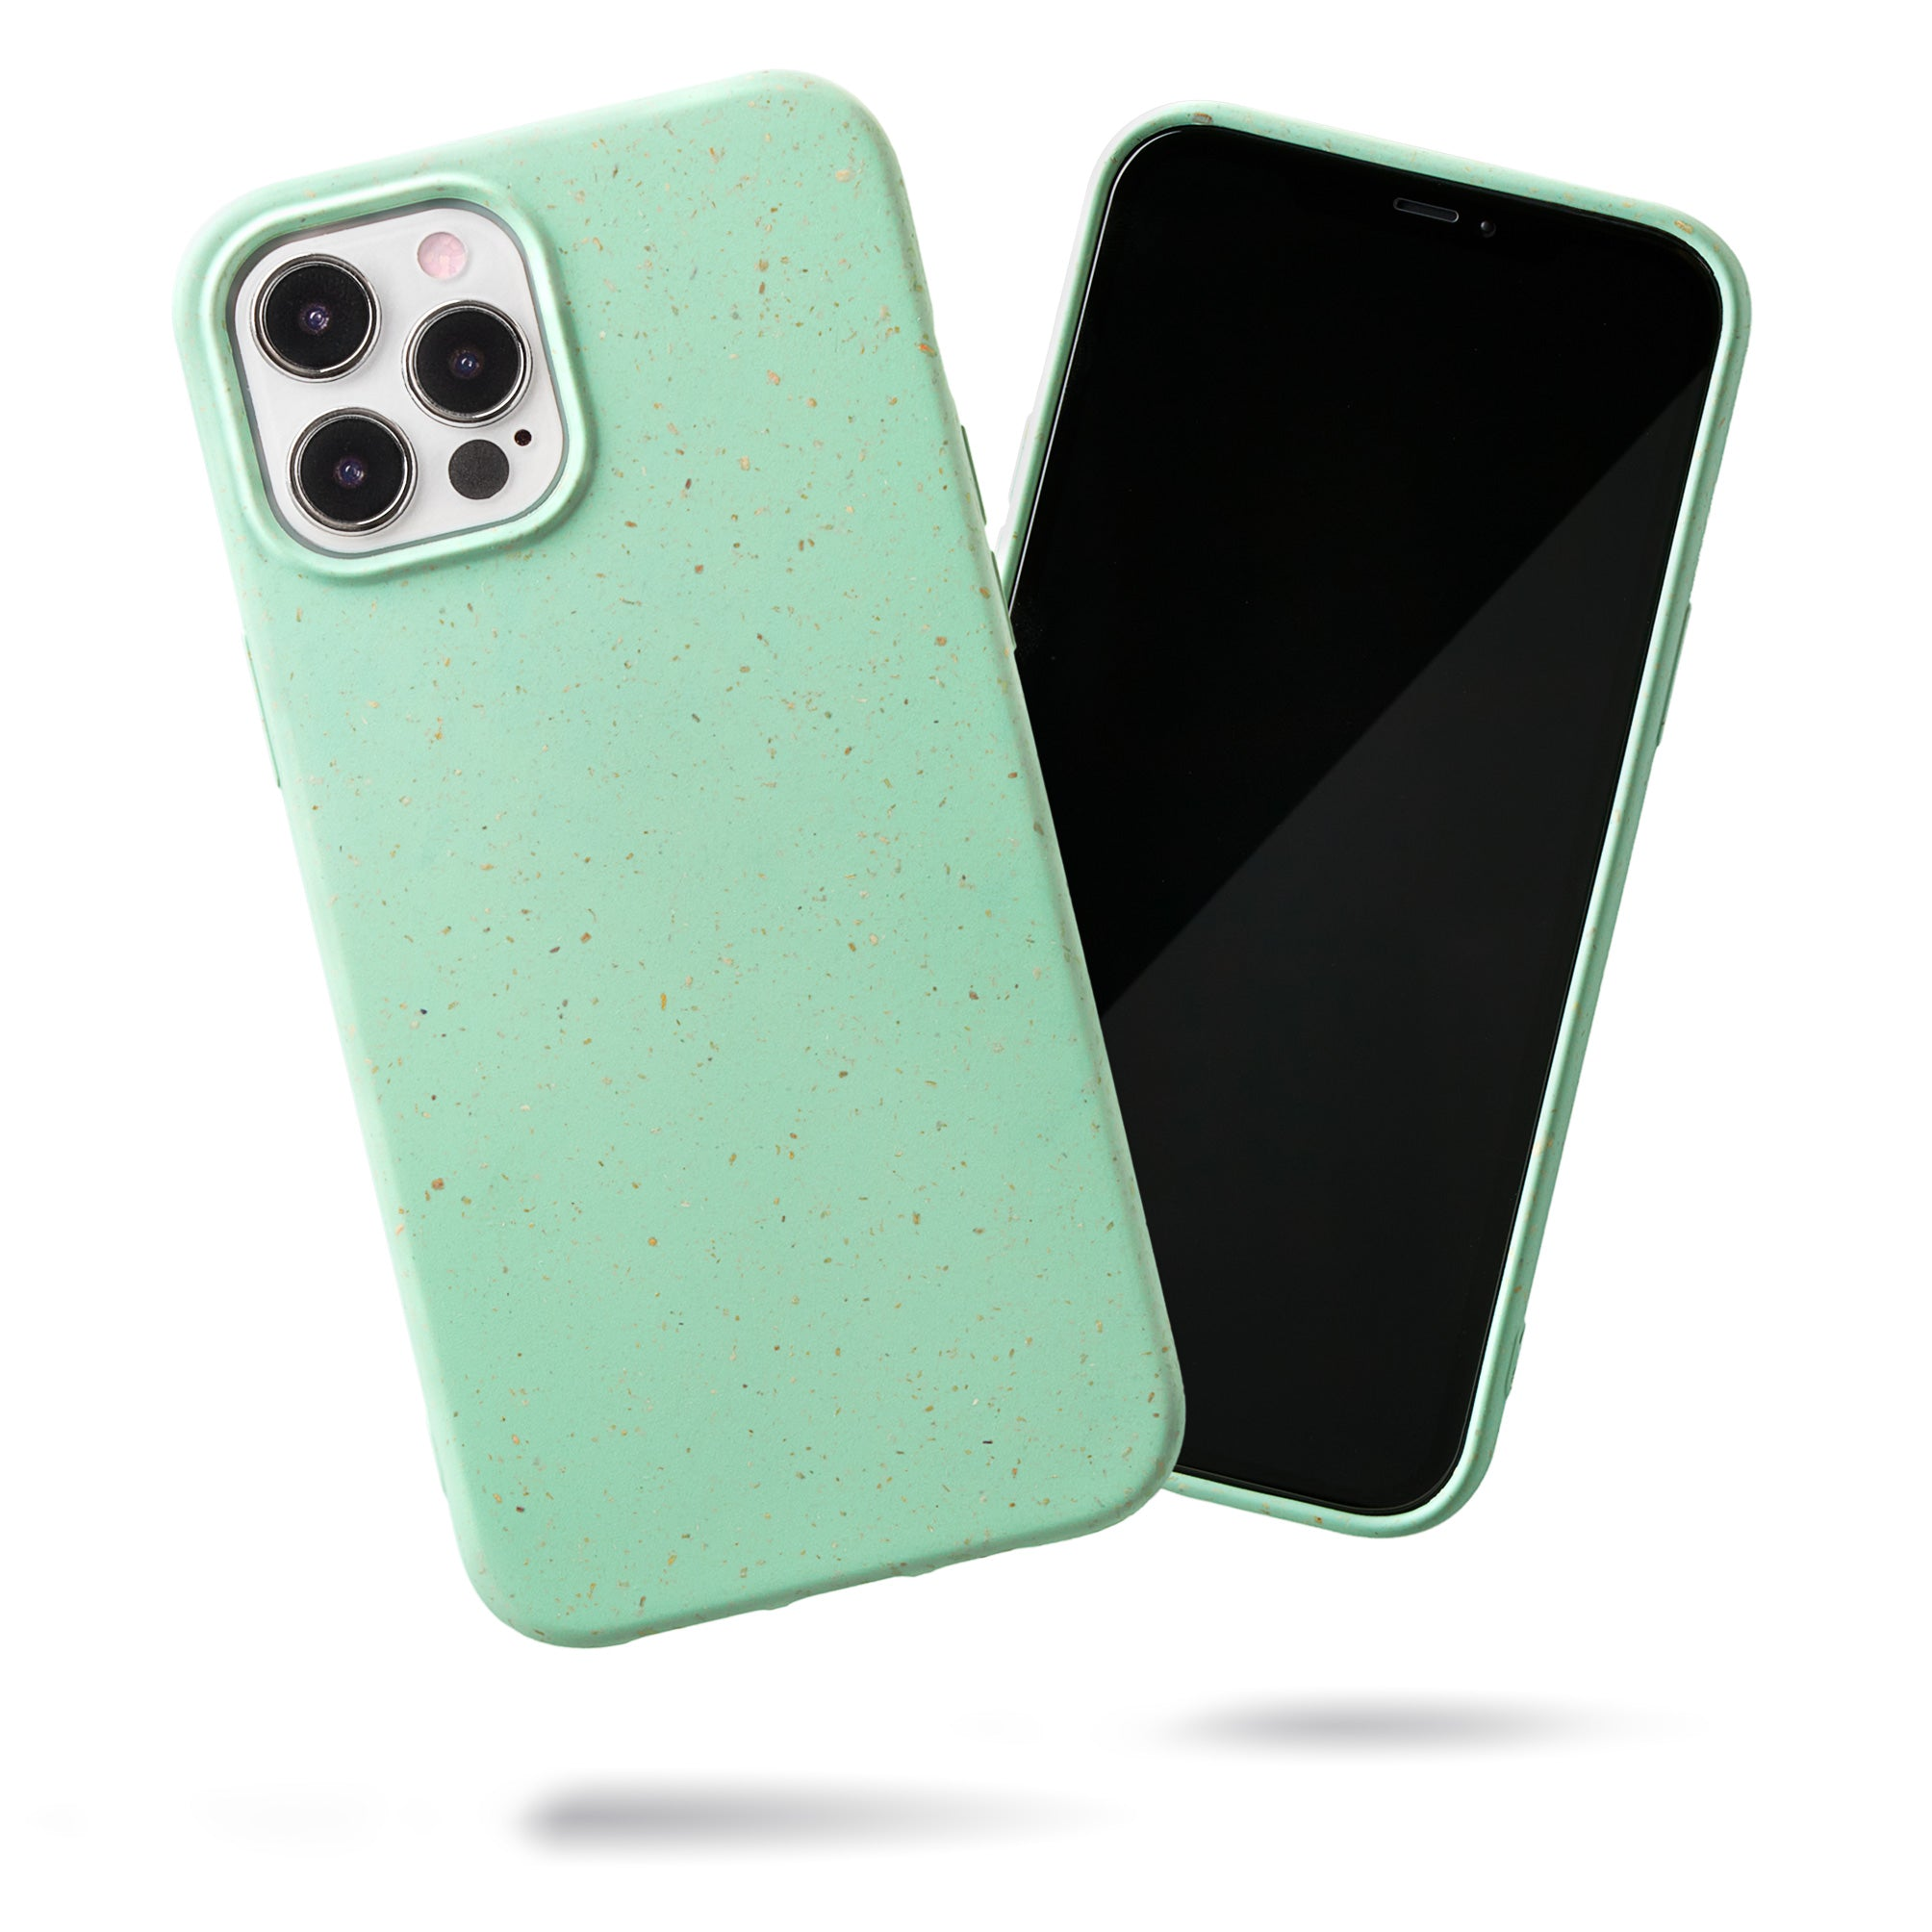 Eco Warrior iPhone 12 Pro Max Case - Pistachio Harvest